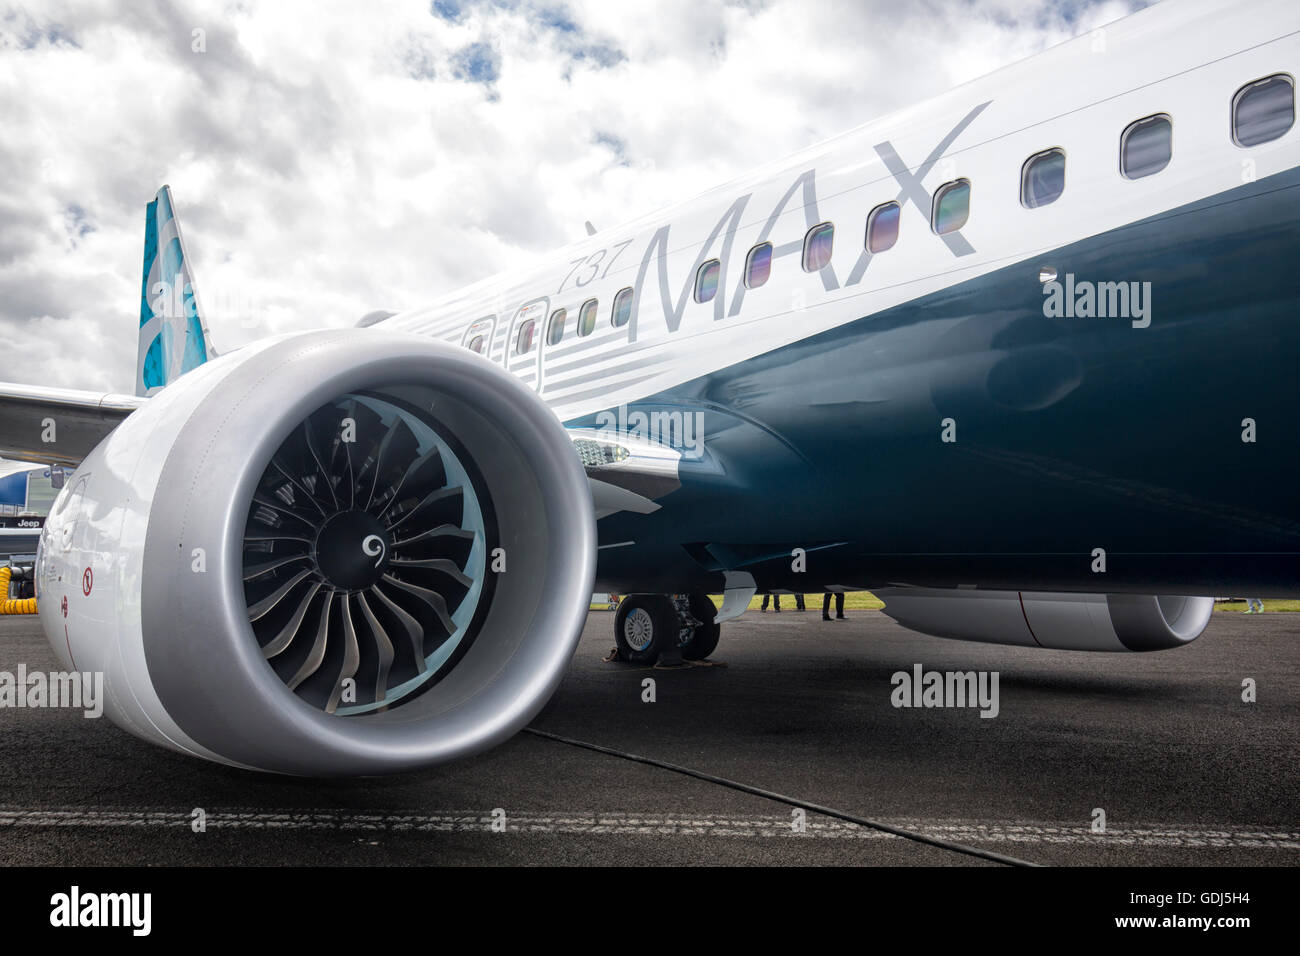 The new Boeing 737 Max and CFM International LEAP engine the Farnborough Airshow 2016 - Stock Image